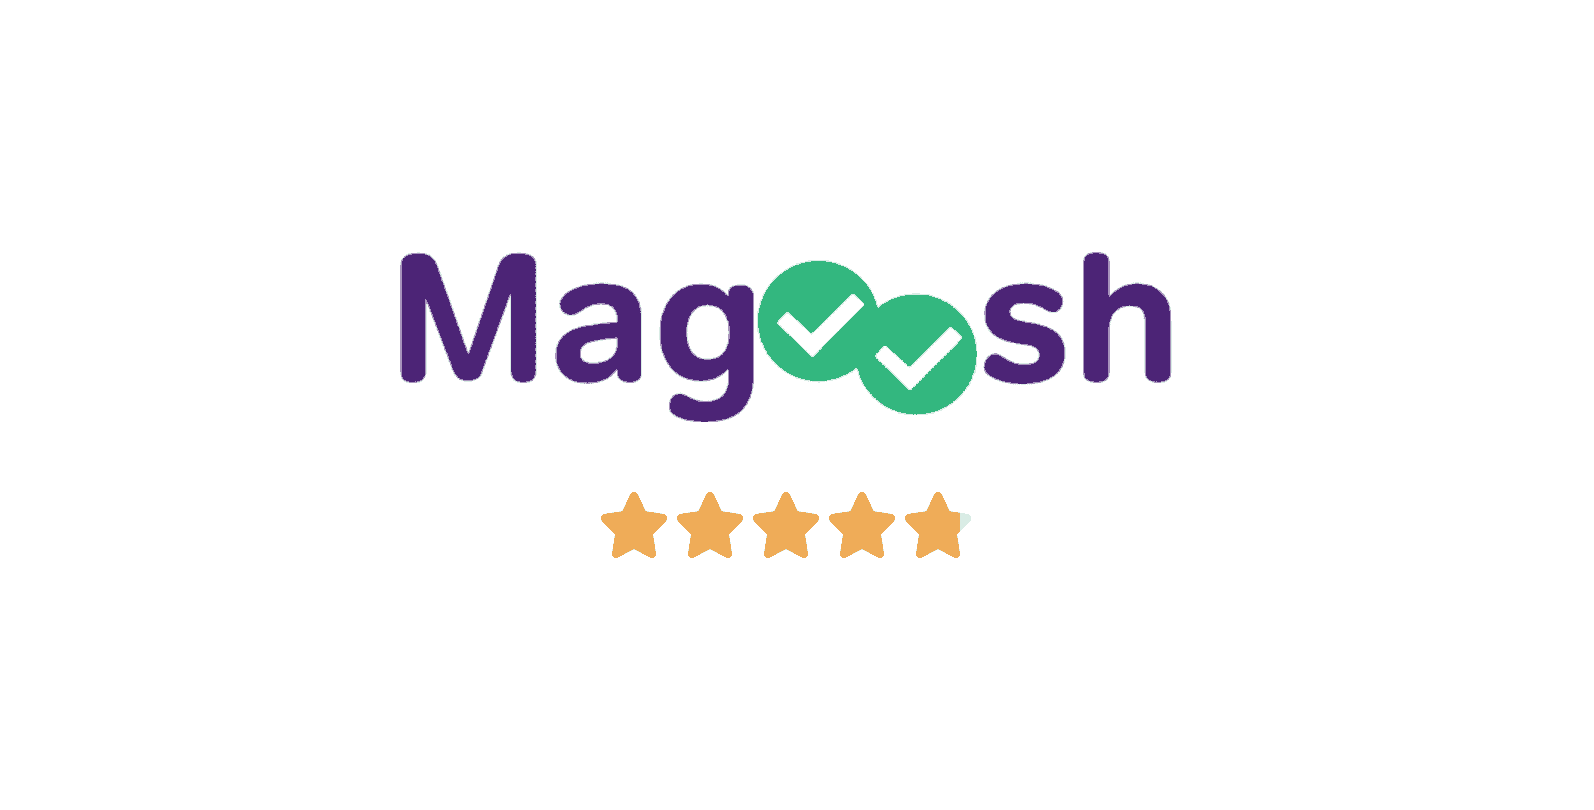 logo of magoosh test prep company with star rating